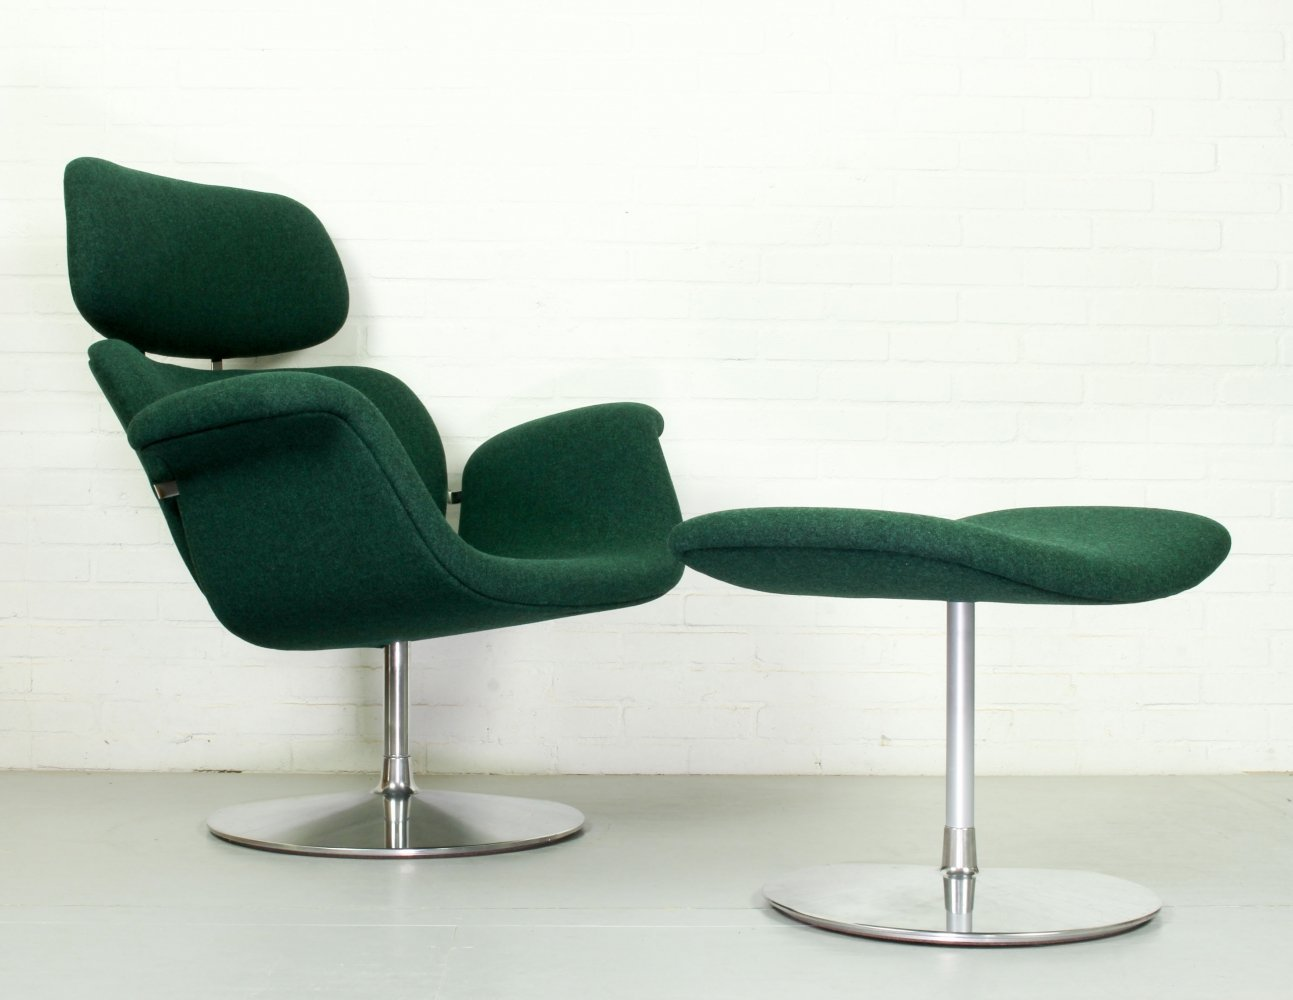 Vintage Pierre Paulin for Artifort Lounge Chair Big Tulip (F545) with ottoman (P545), 1970s